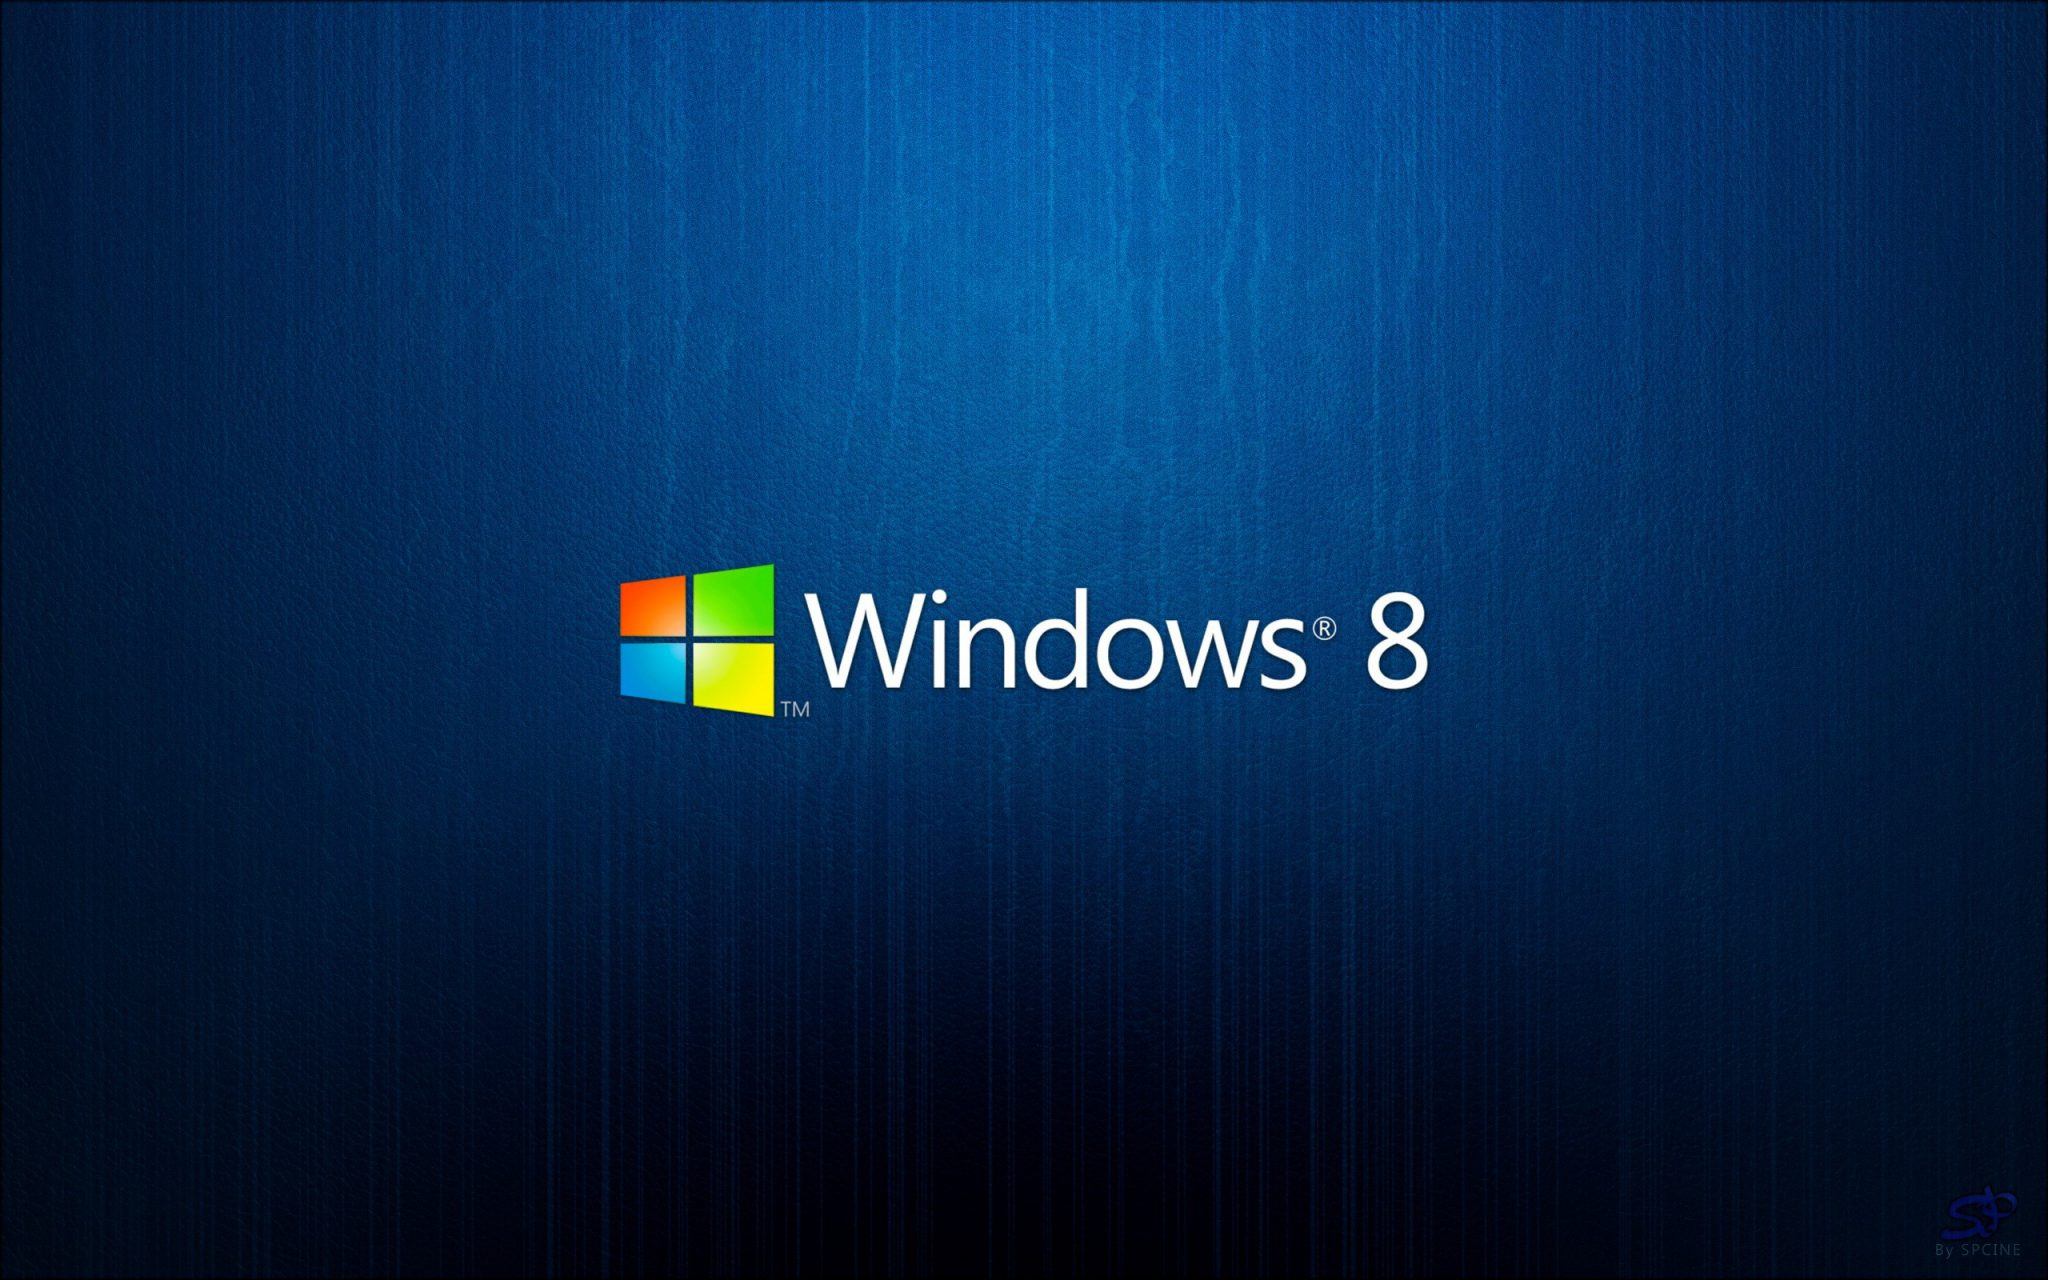 Windows Stops Windows 8.0 Support, Asks Users For 8.1 Upgrade